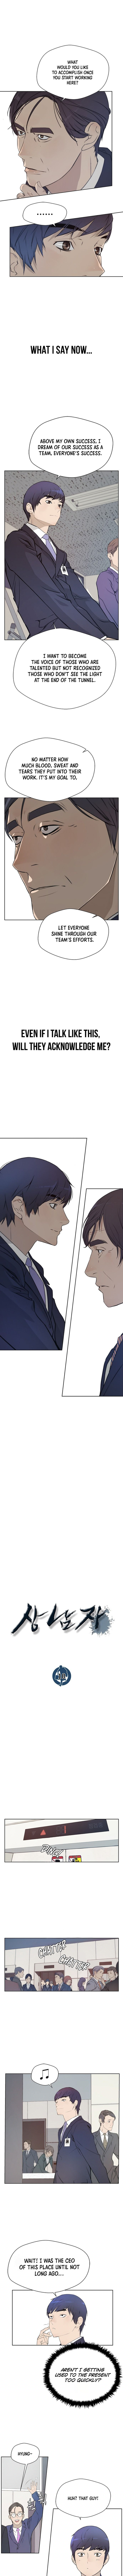 Real Man - chapter 10 - #1